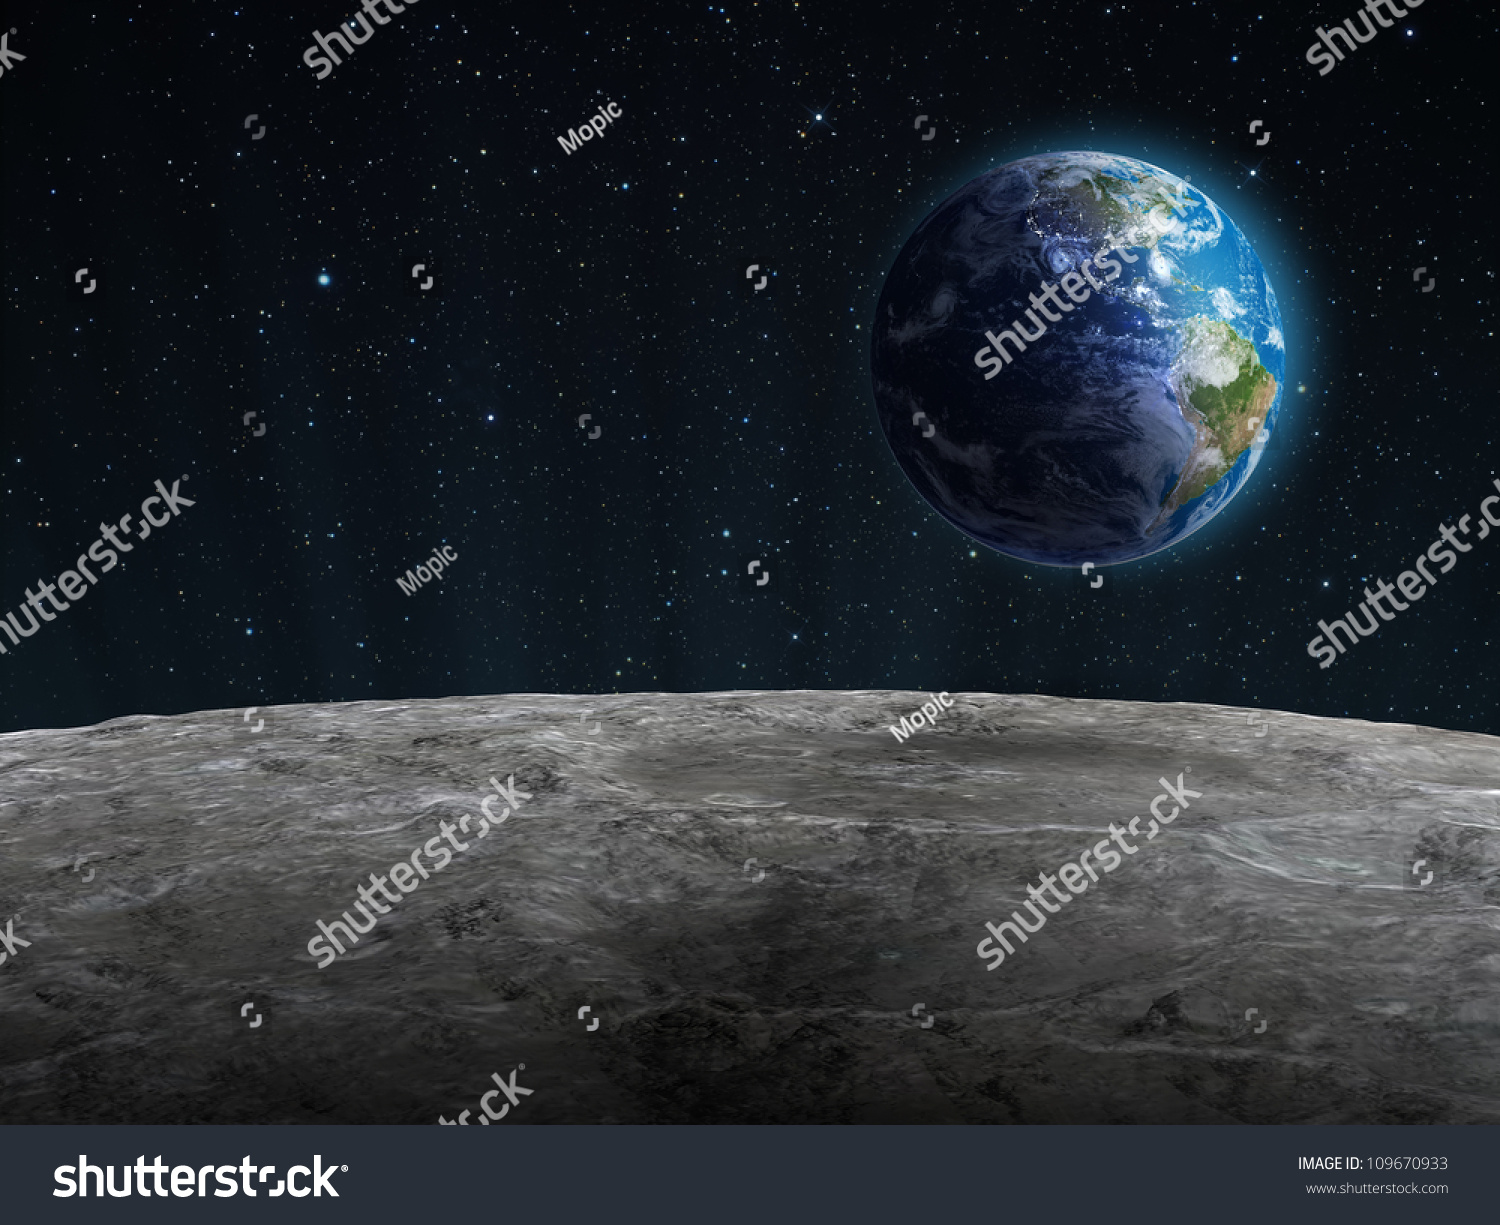 surface of moon as seen from earth - photo #4